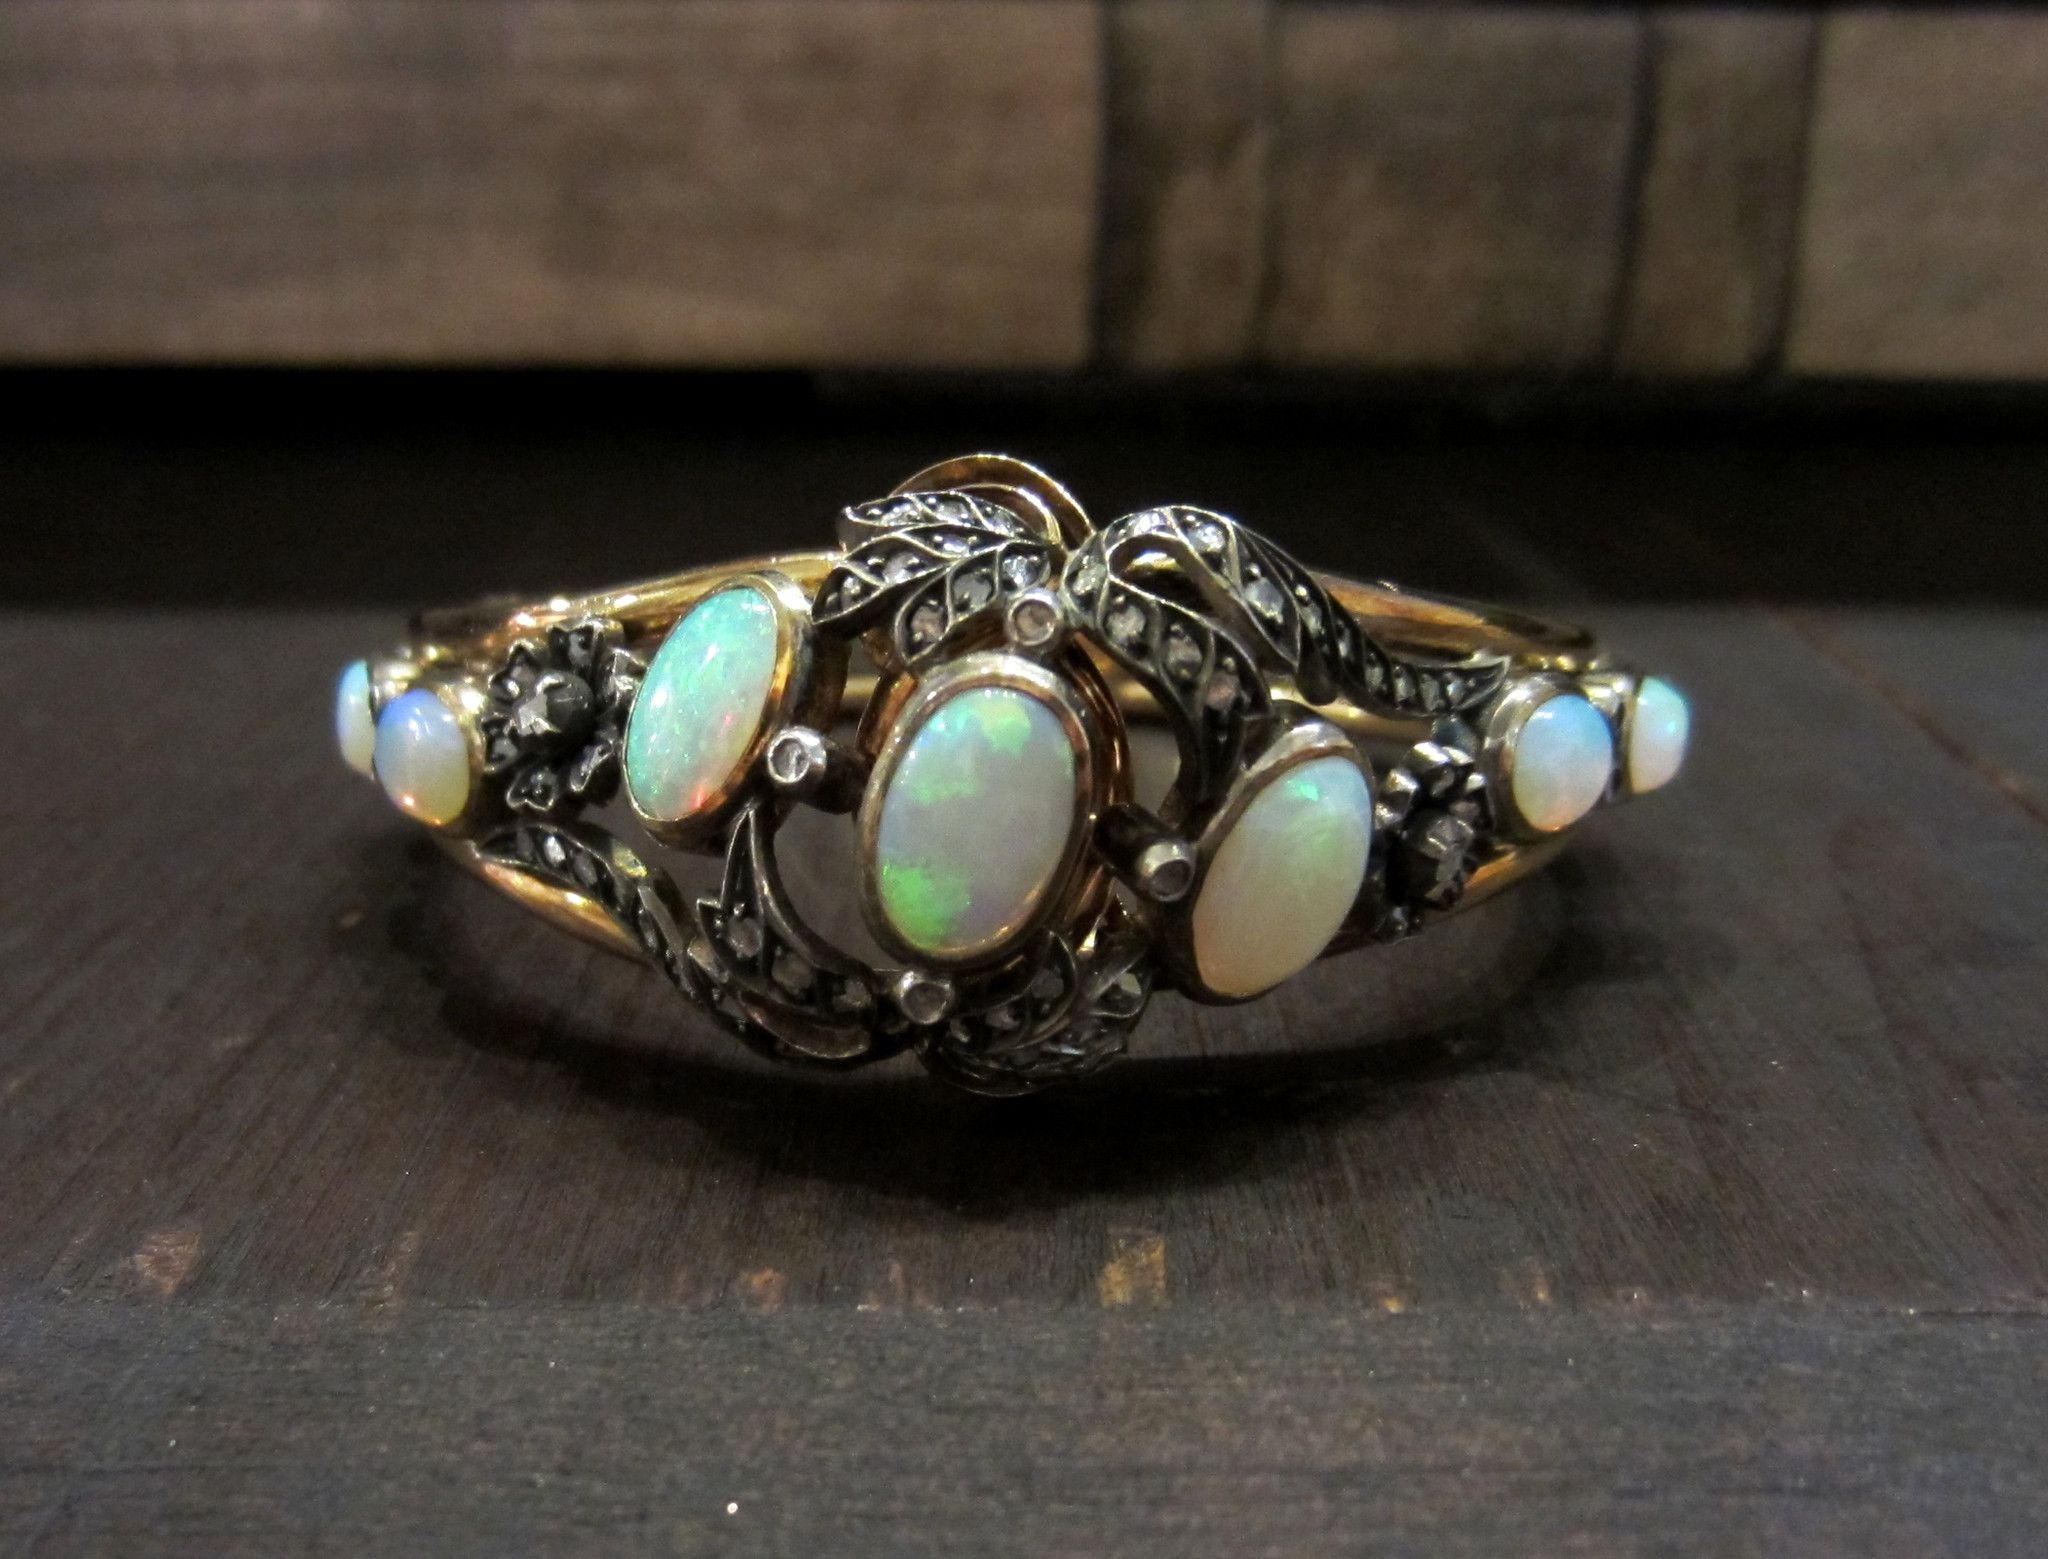 Sold Victorian Opal And Rose Cut Diamond Hinged Bangle Bracelet Silver 18k C 1860